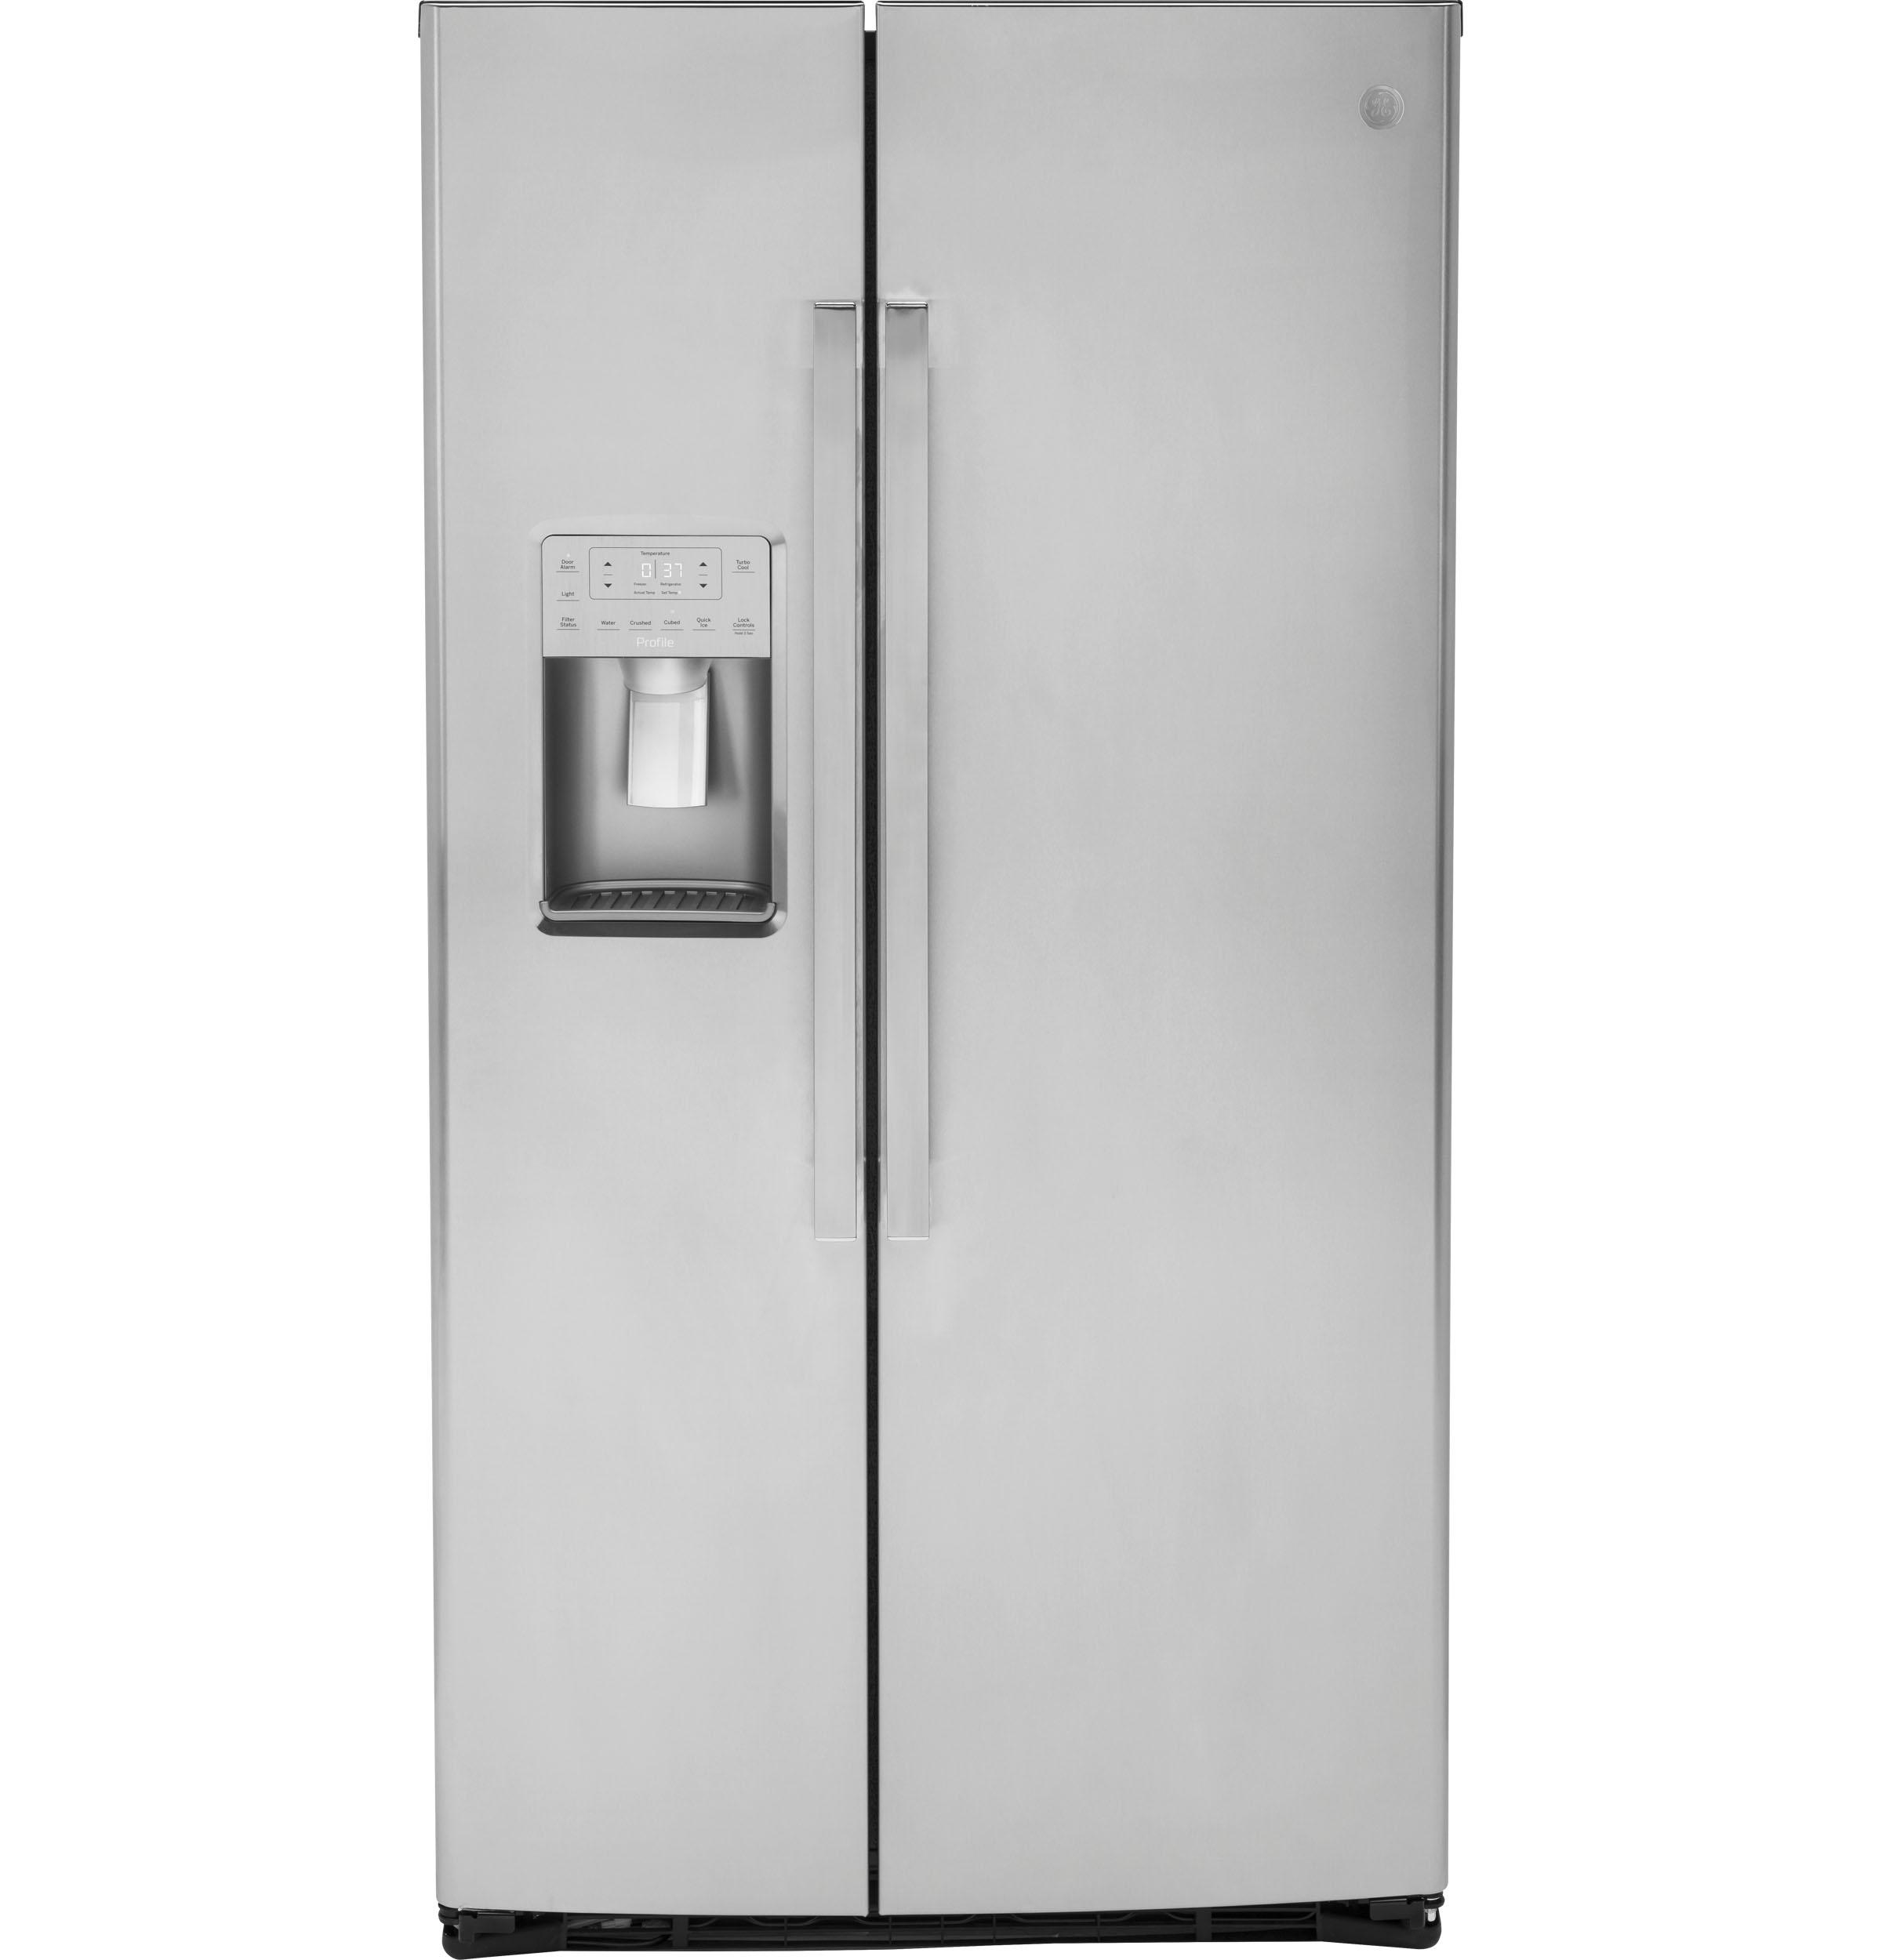 GEGe Profile™ Series Energy Star® 25.3 Cu. Ft. Side-By-Side Refrigerator